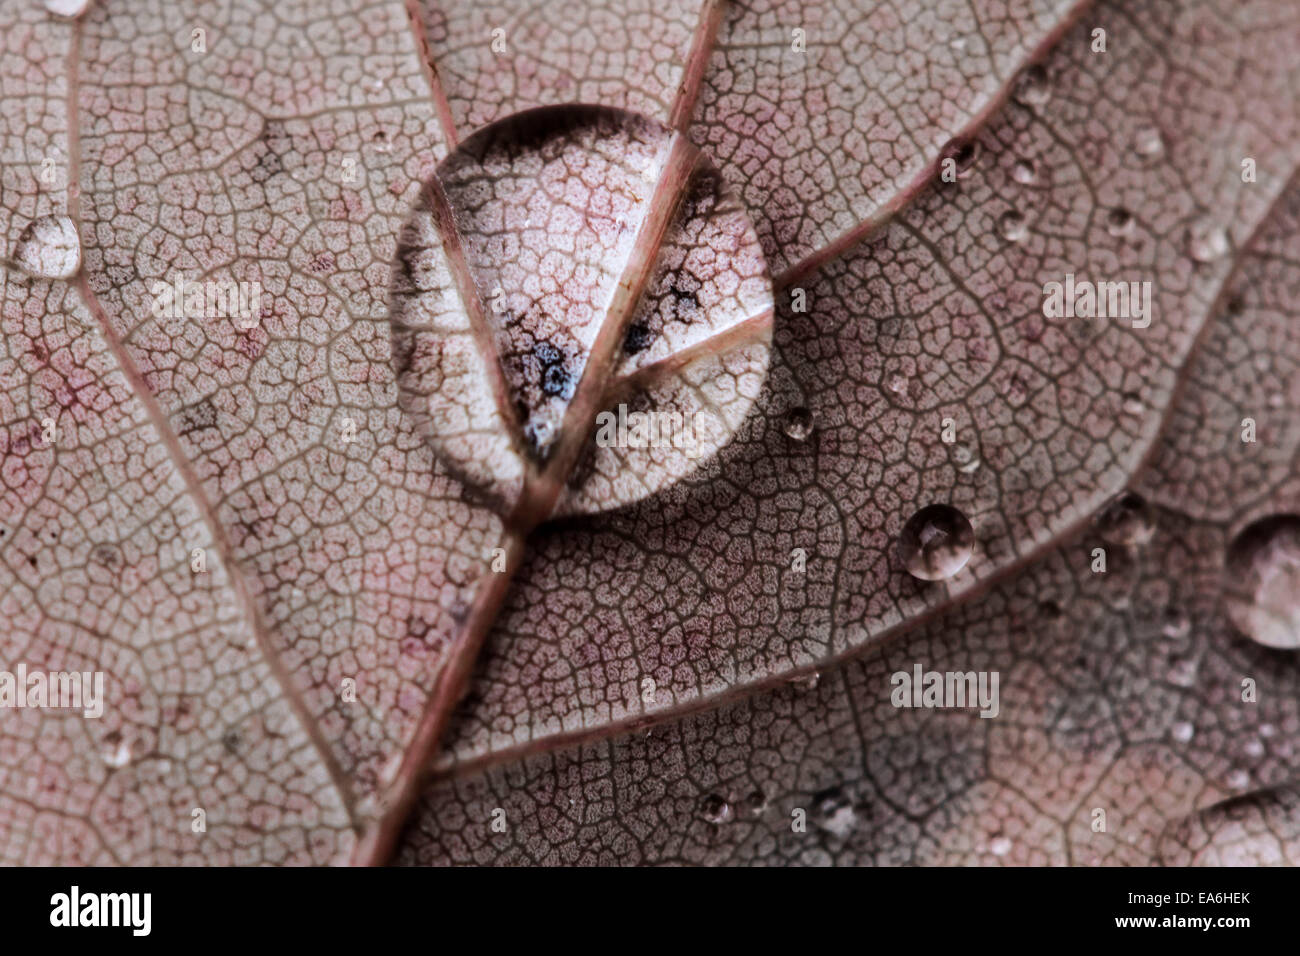 Rain drop on leaf - Stock Image